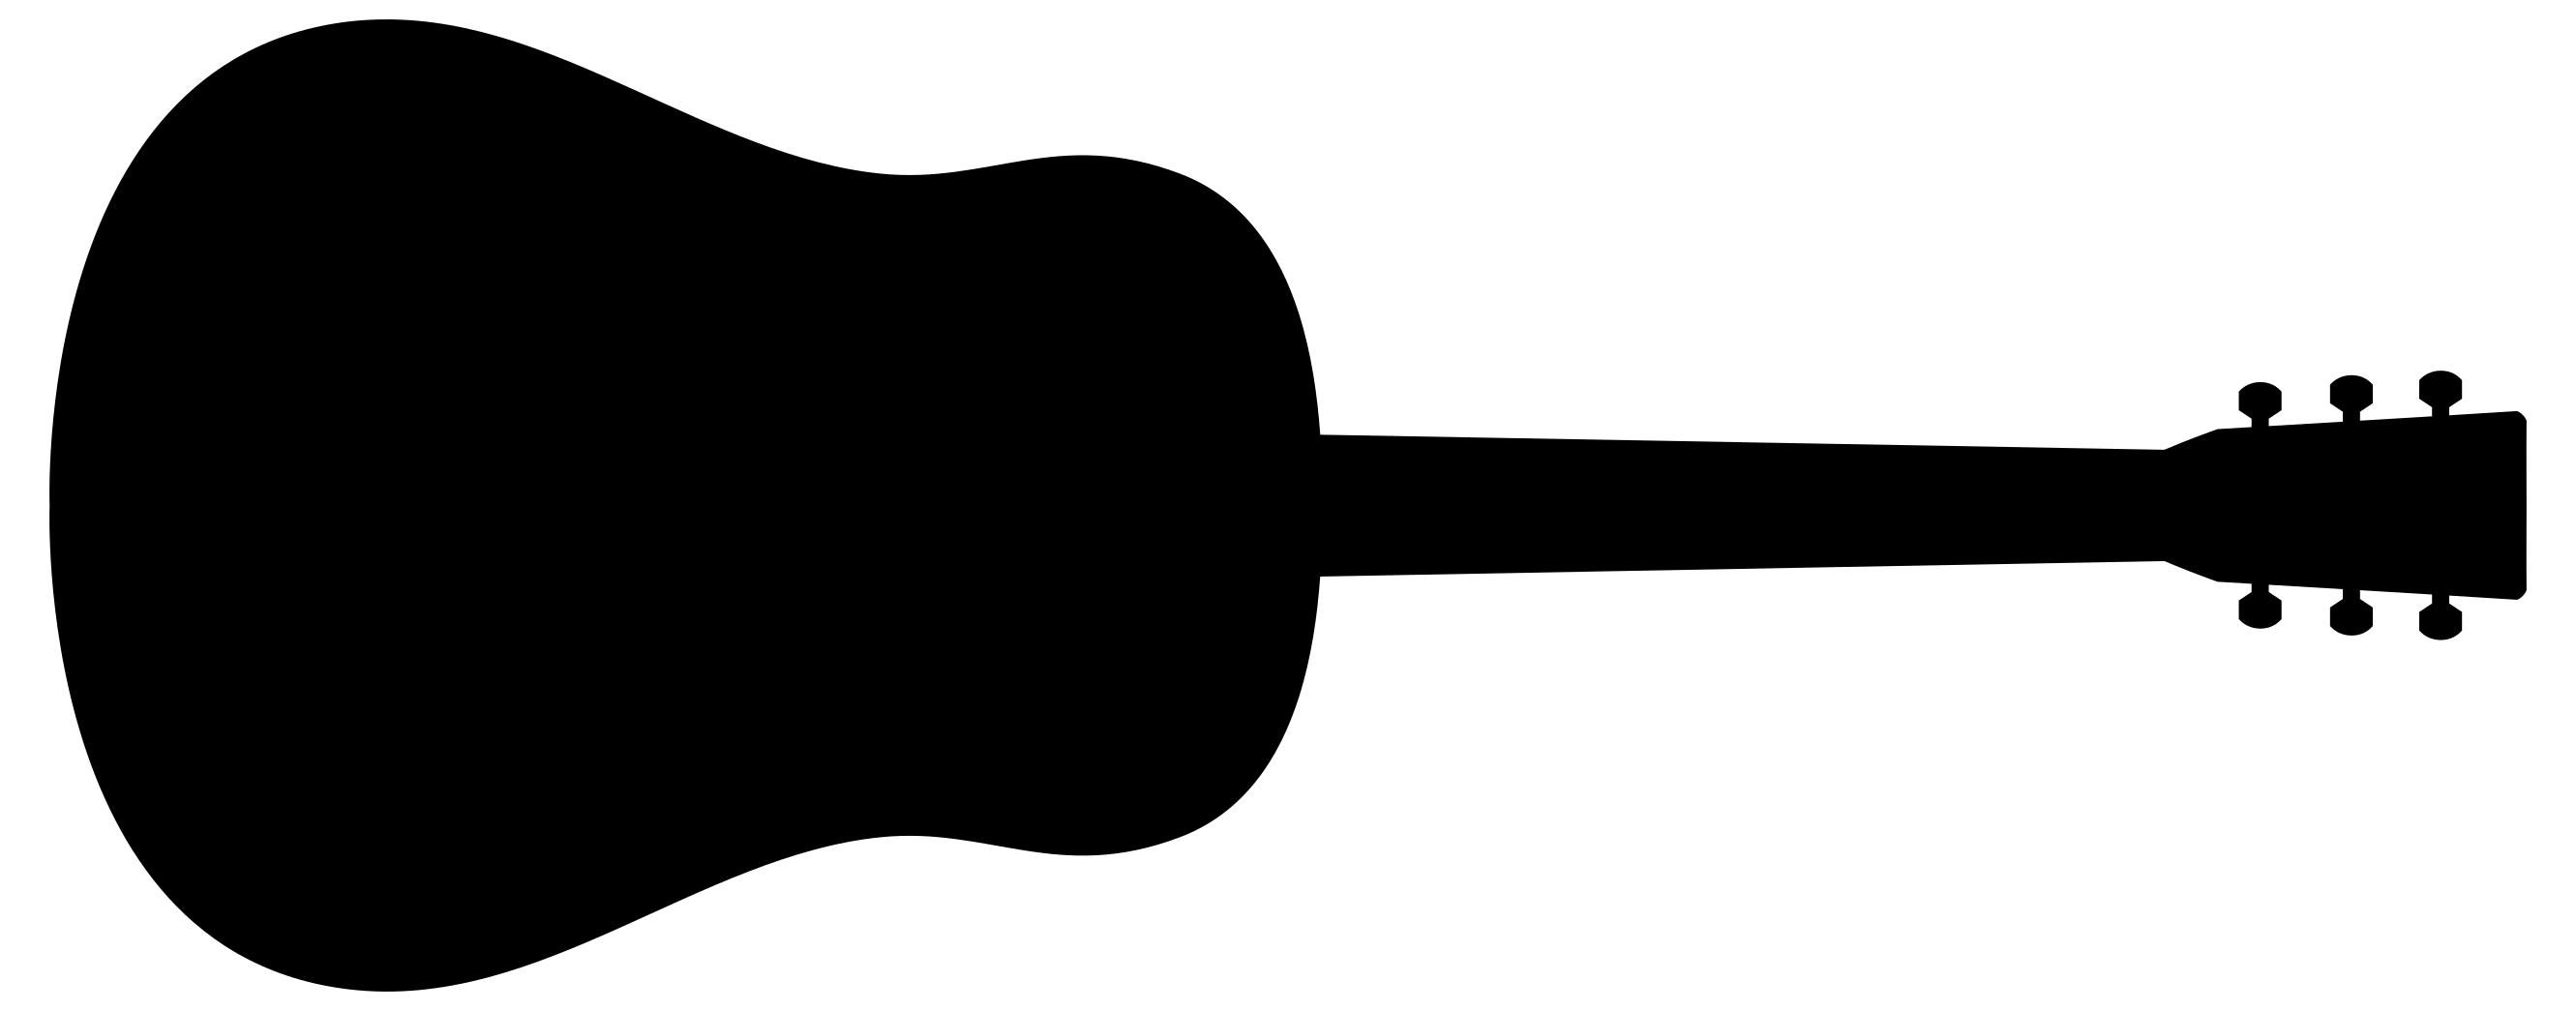 2662x1045 Old Fashioned Guitar Silhouette Clipart